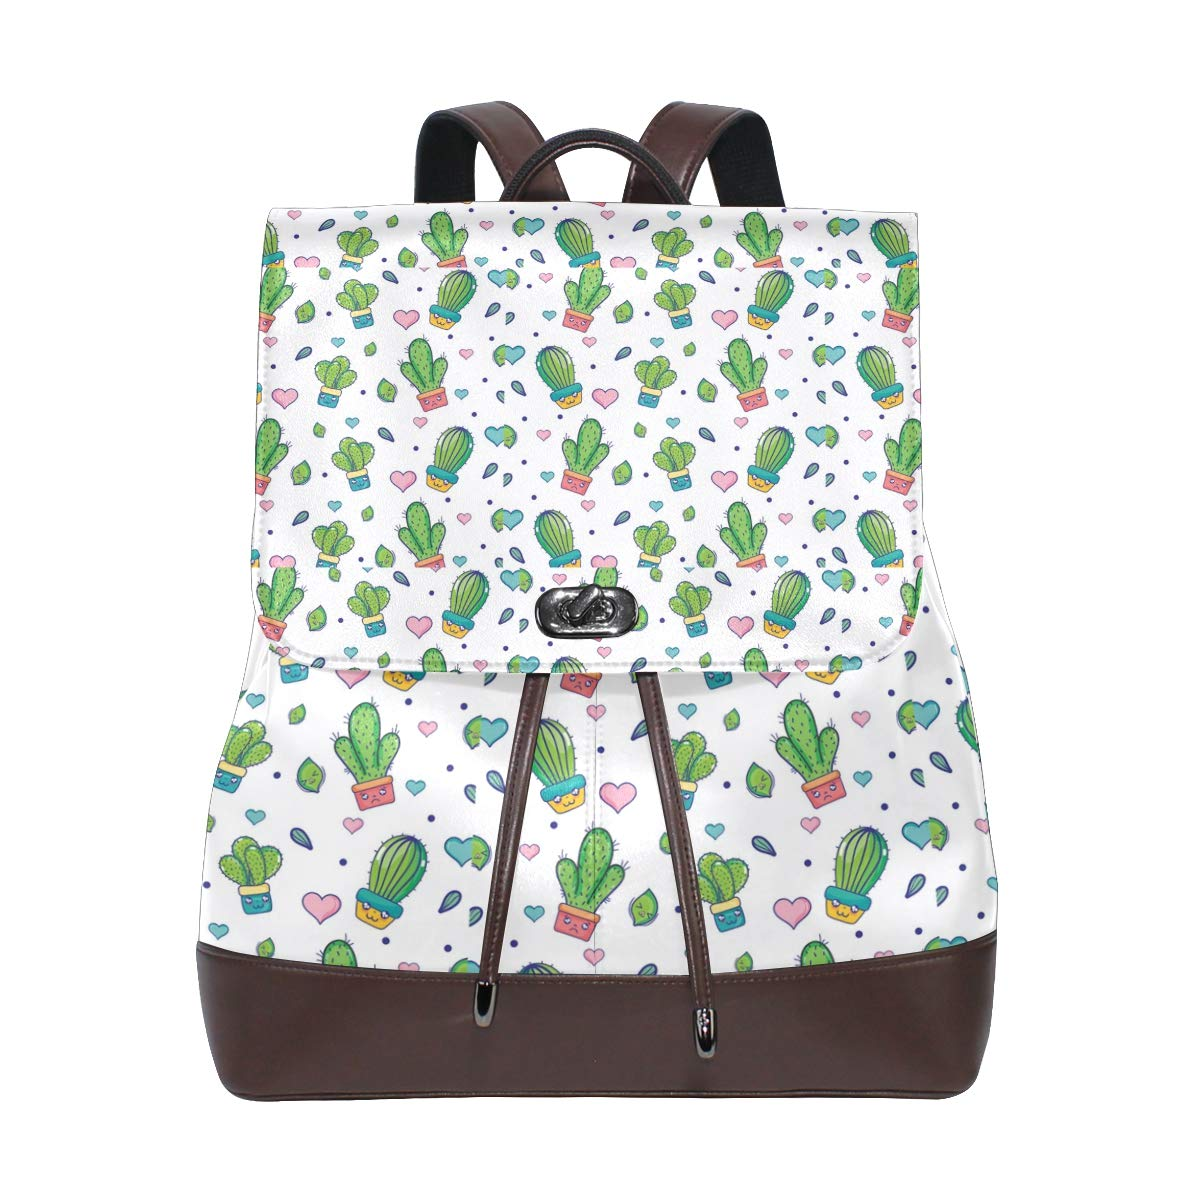 Leather Natural Cactus Plant House Backpack Daypack Bag Women